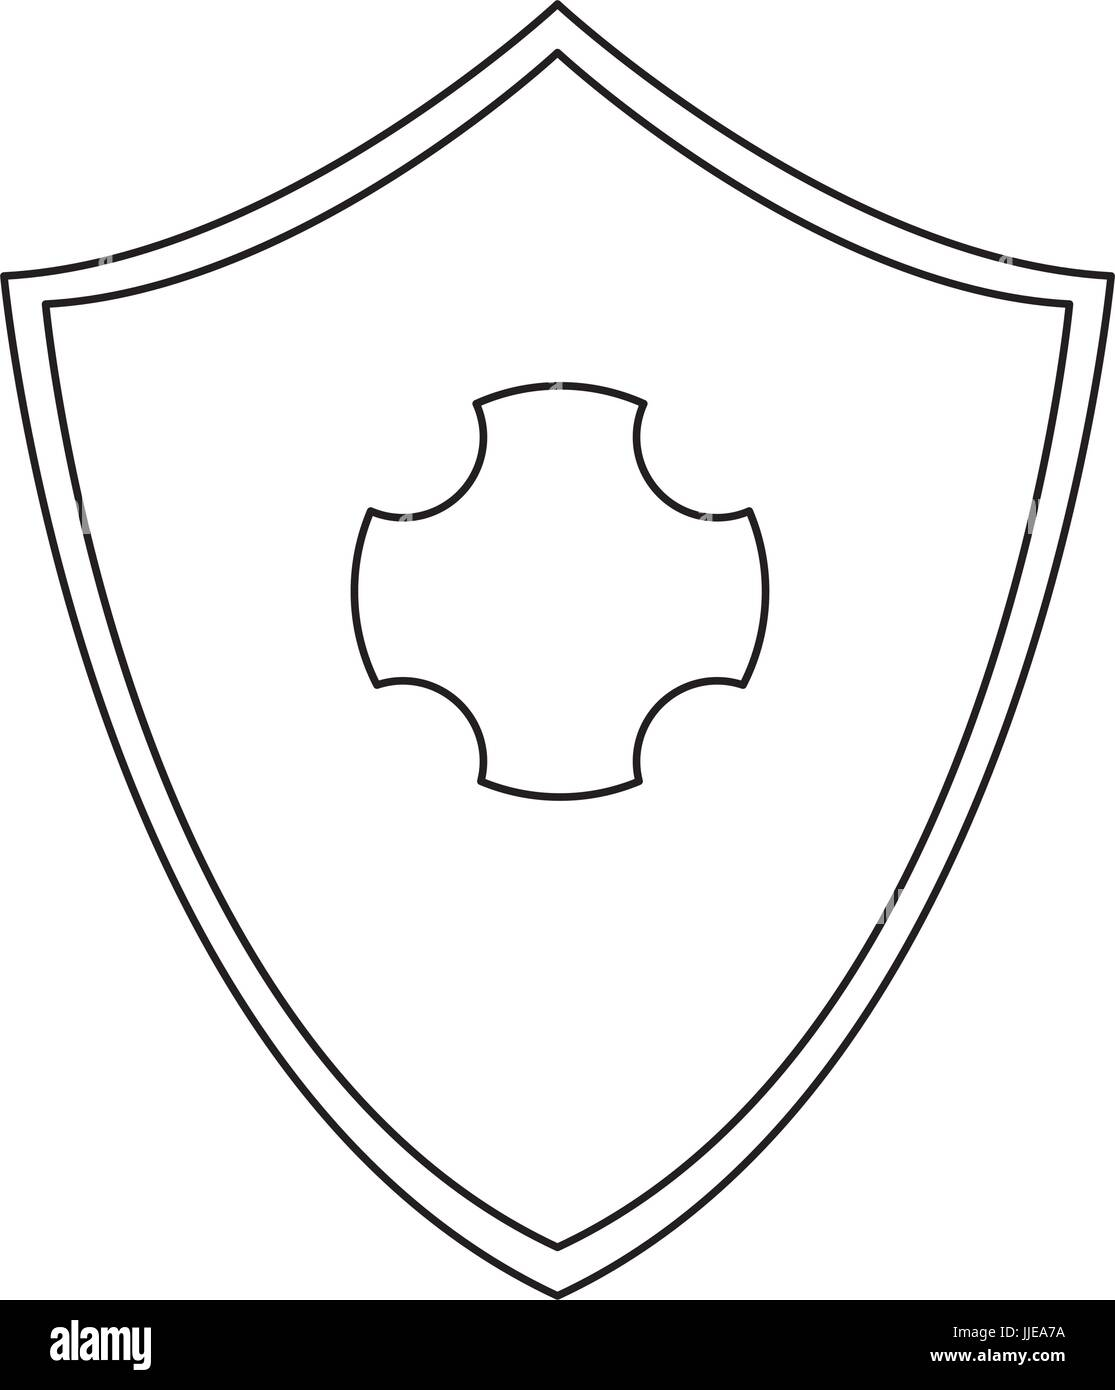 shied protection healthcare safety symbol design - Stock Image